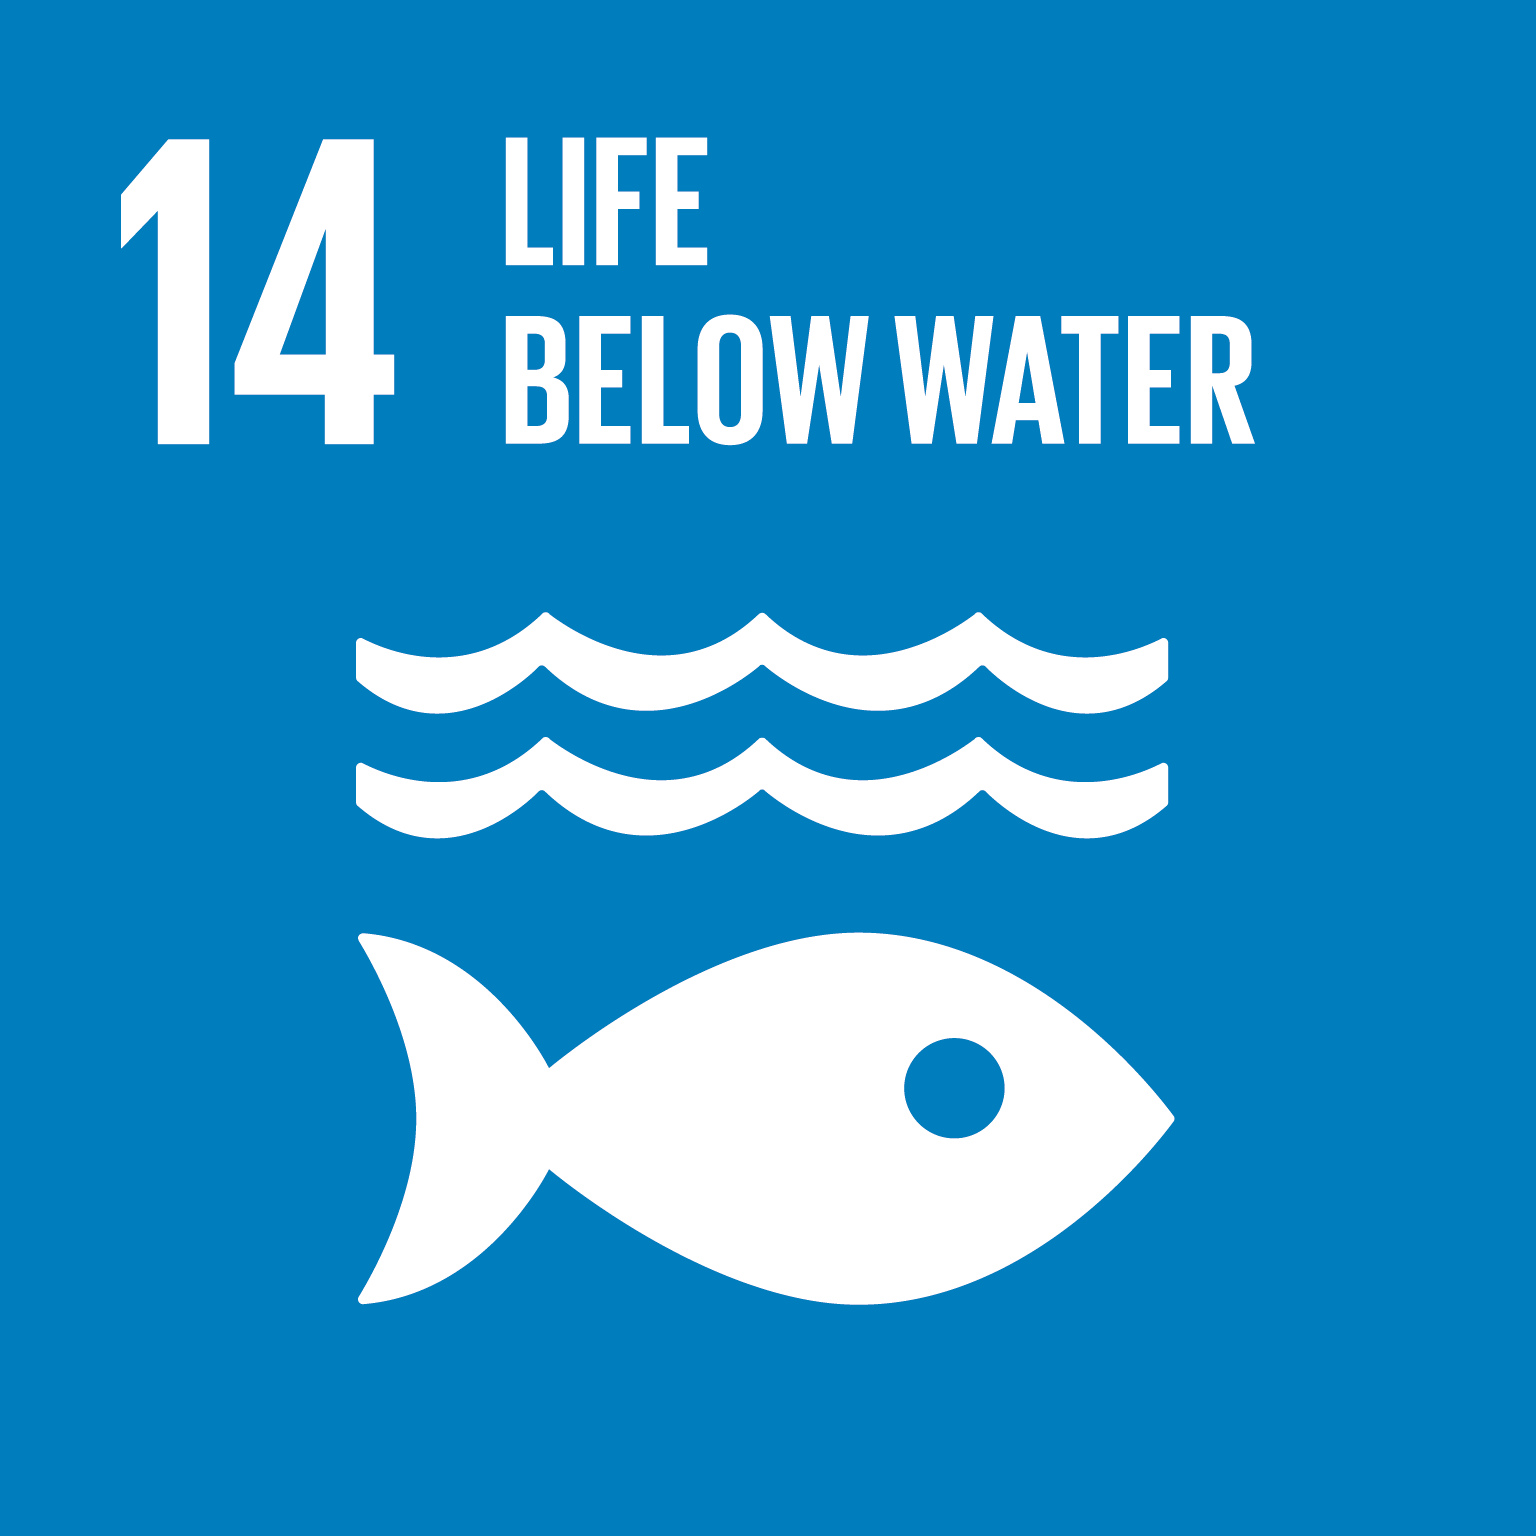 Goal 14: Life Below Water, the text of this infographic is listed below